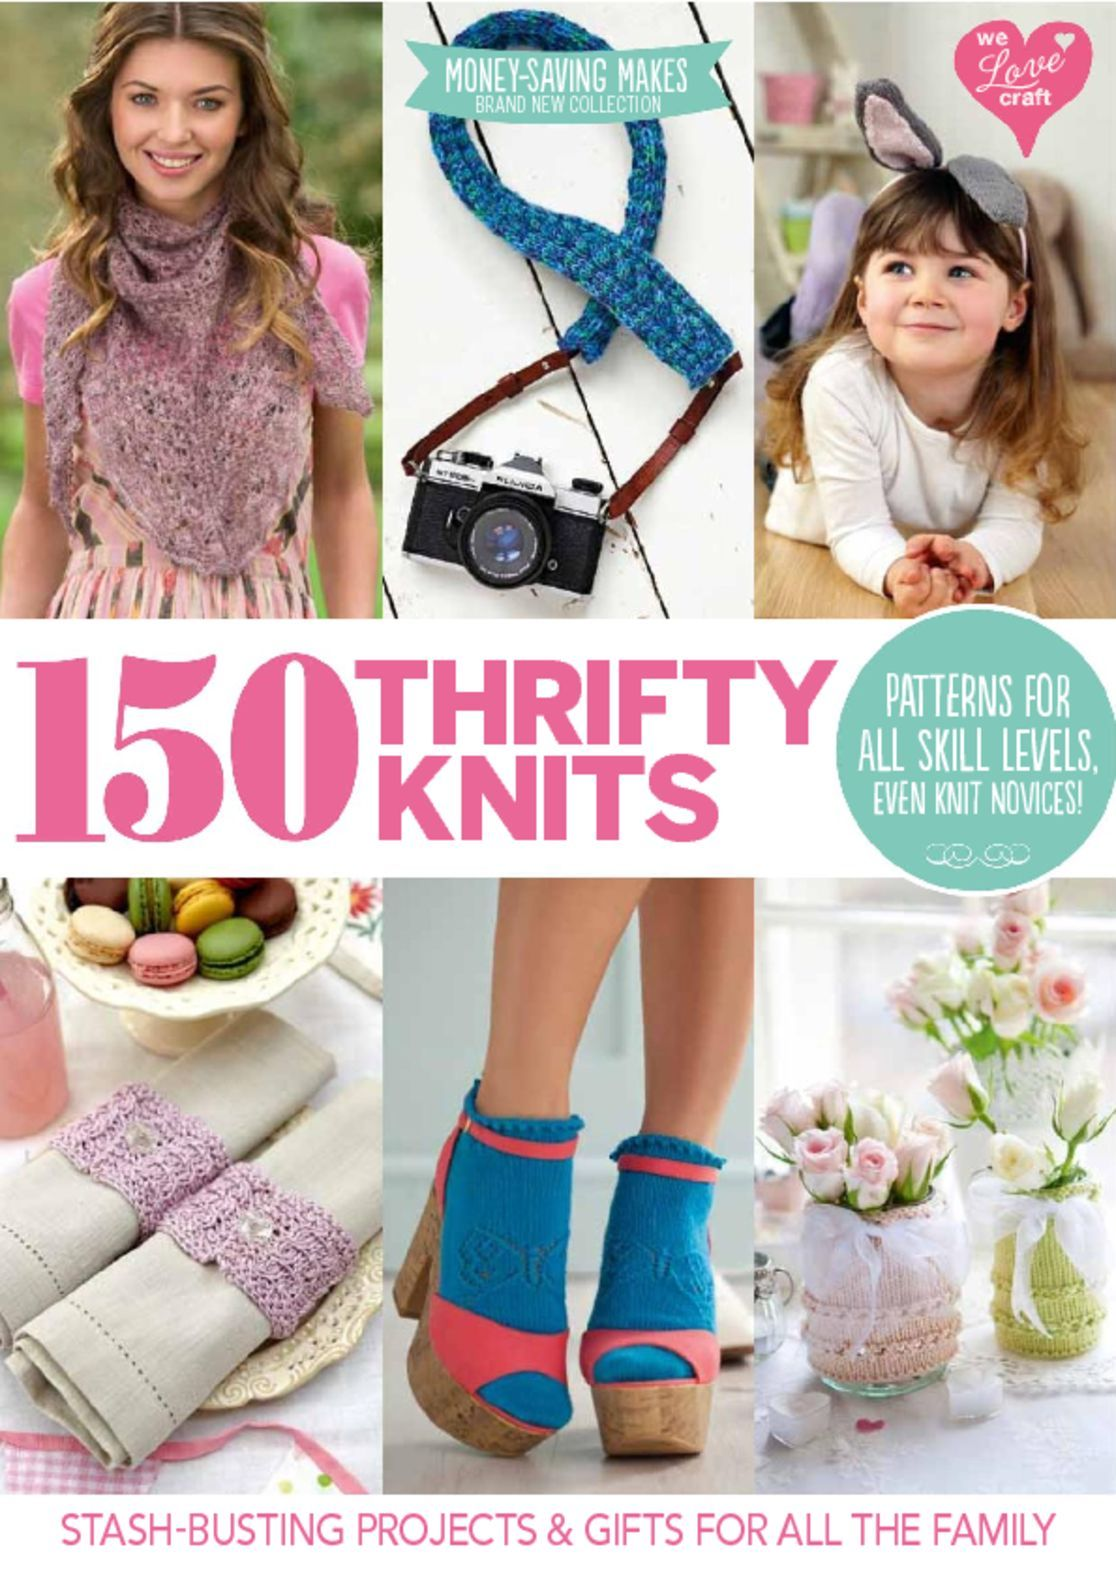 150 Thrifty Knits Digital